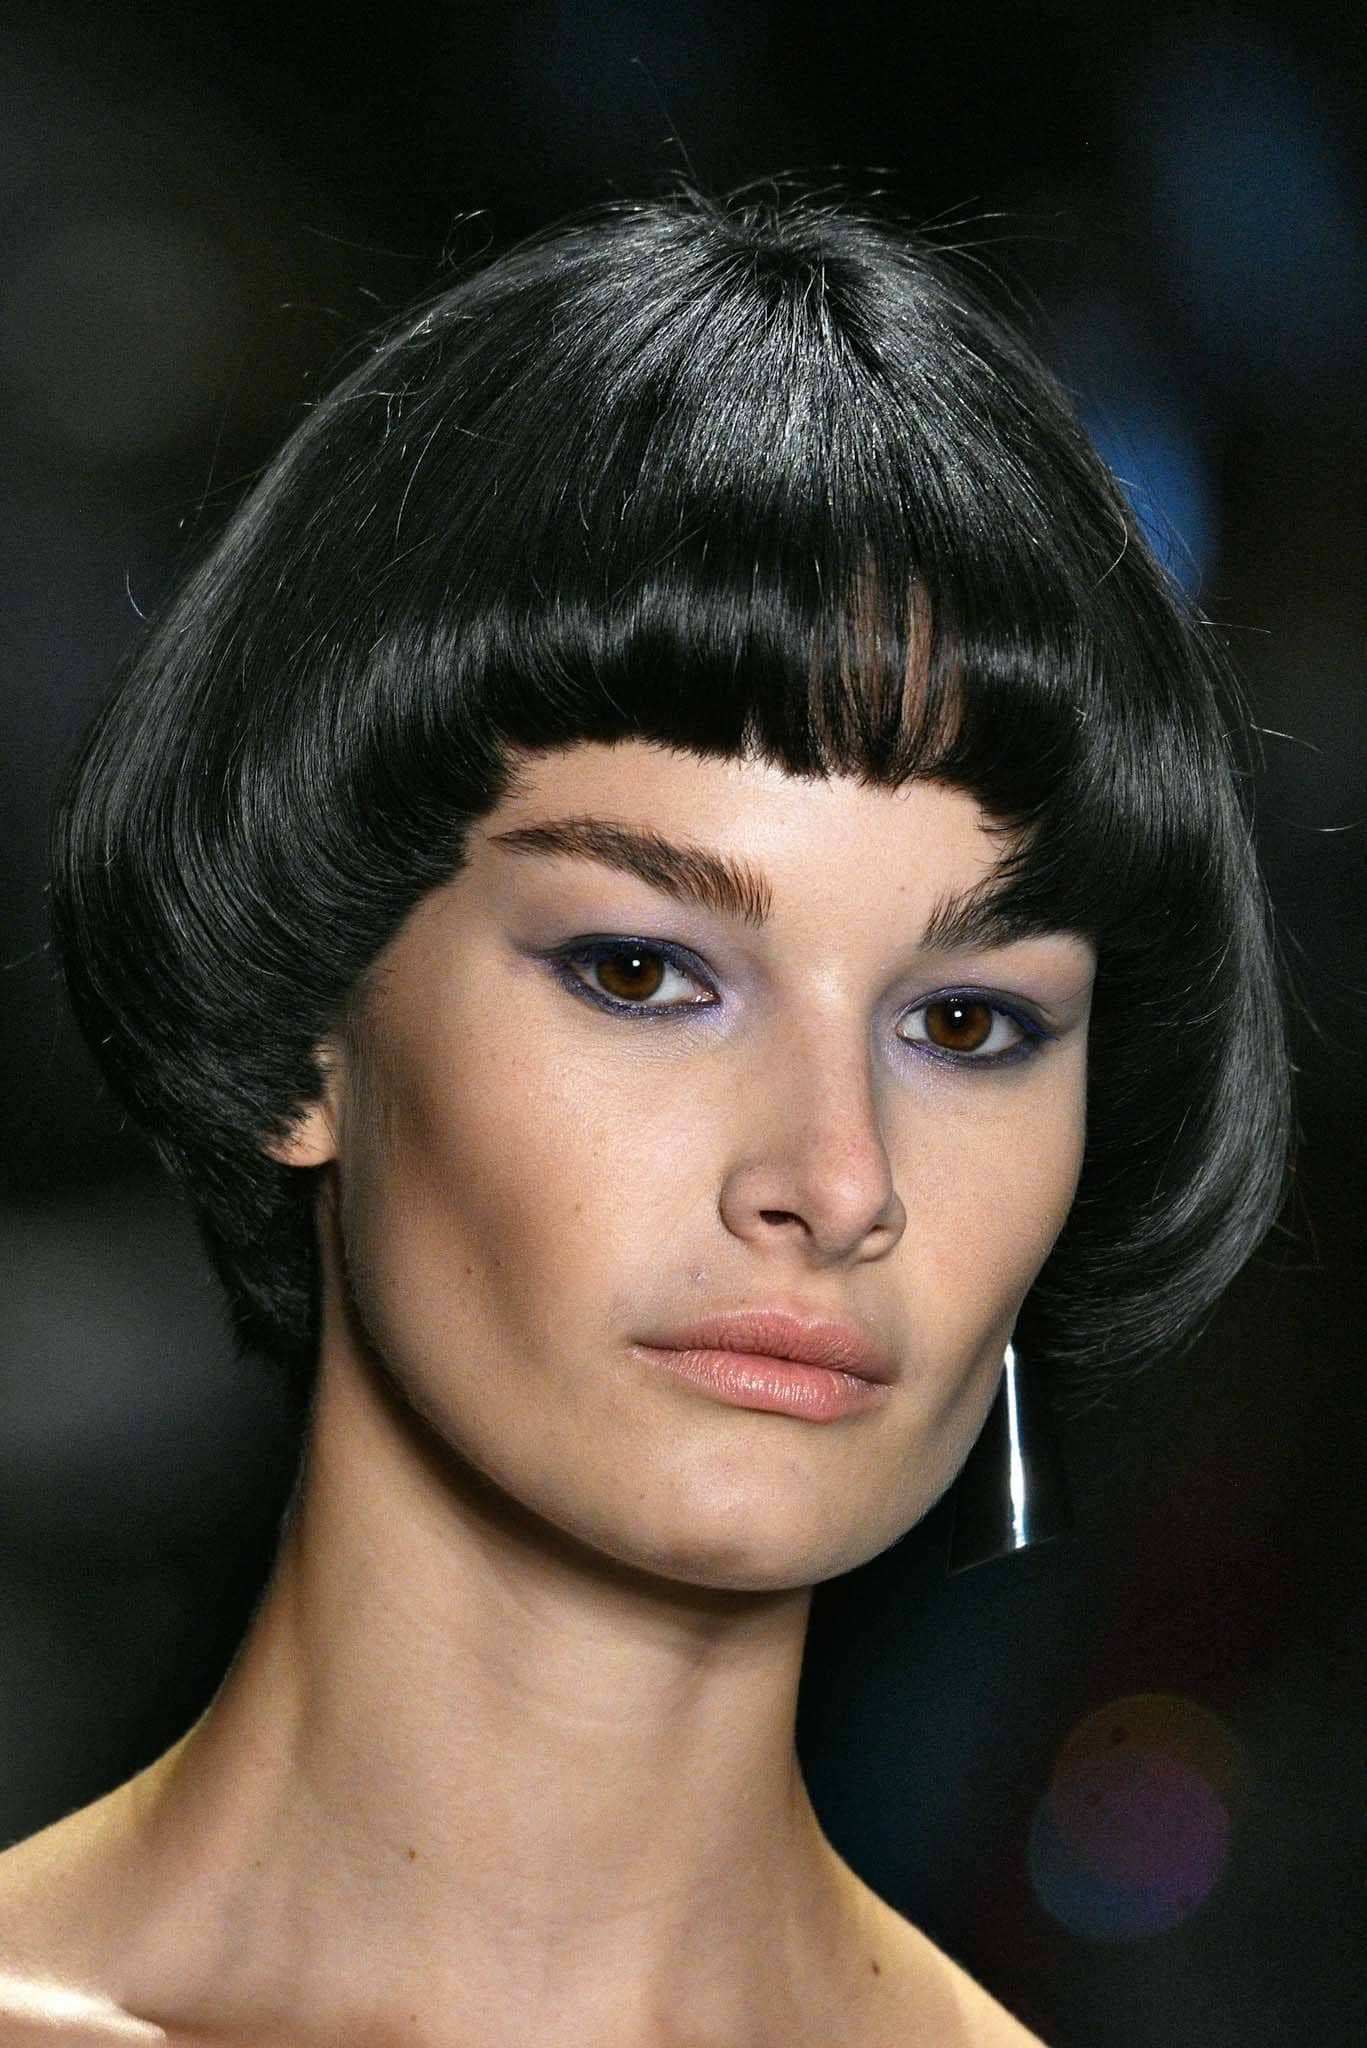 Bowl Cut For Women 5 Chic Ways To Wear